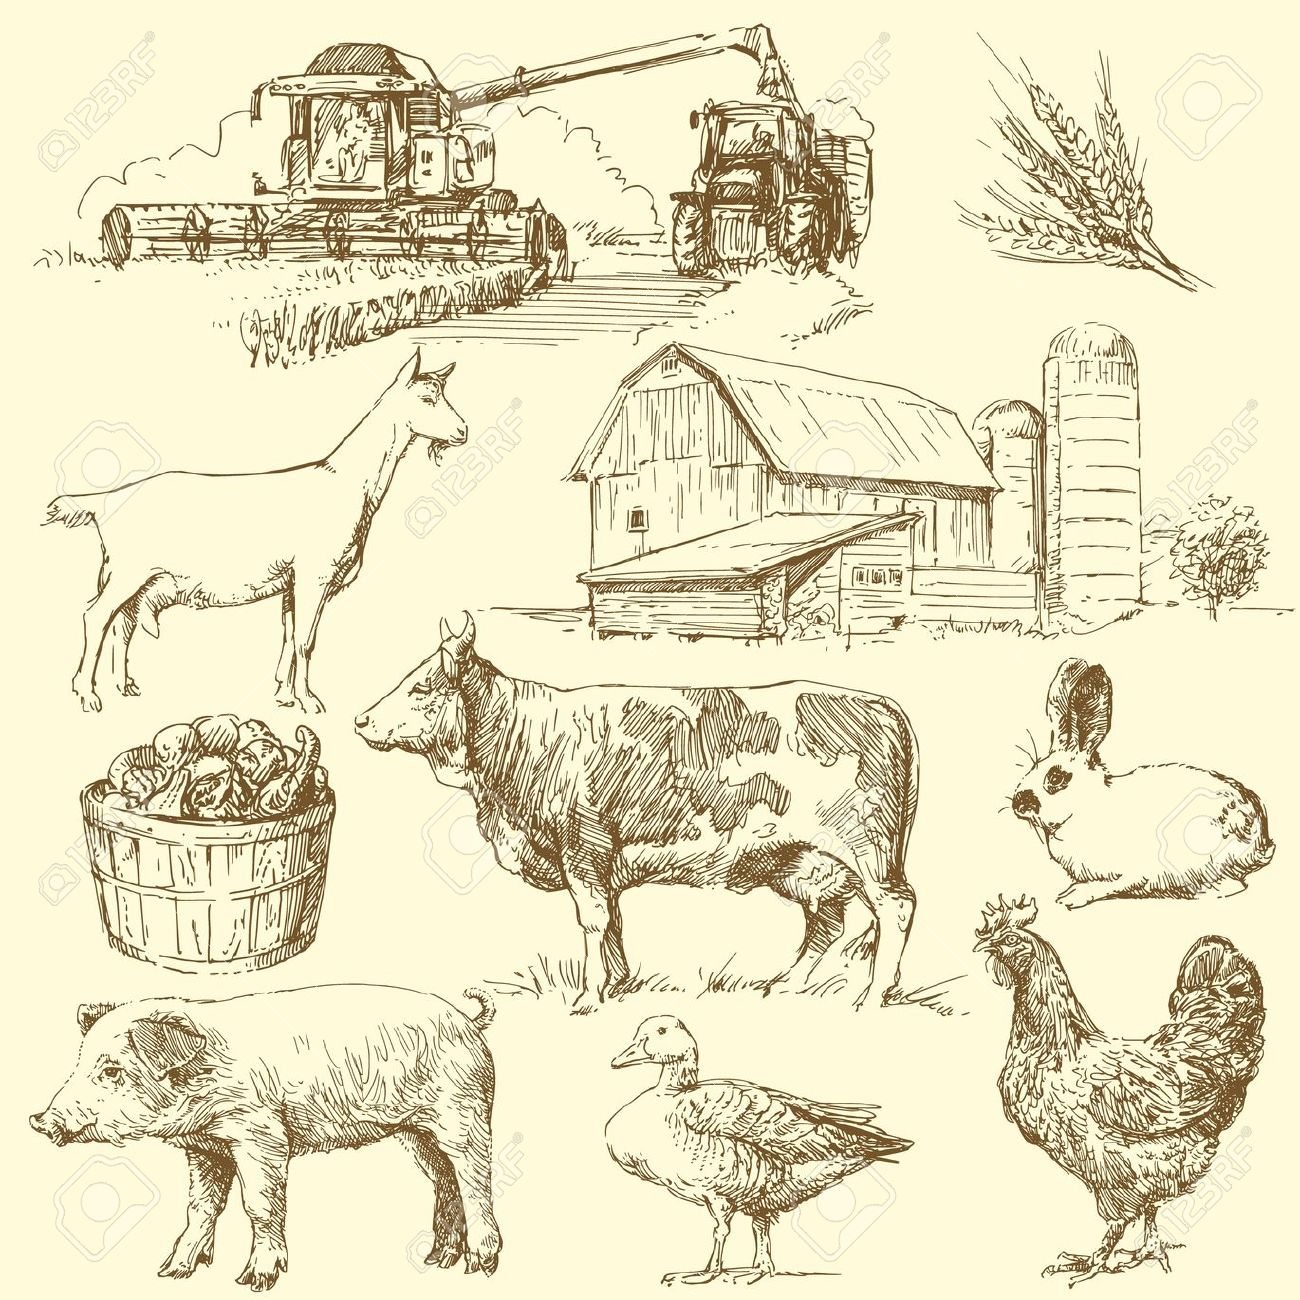 Antique farmer clipart graphic free library Free Vintage Farm Cliparts, Download Free Clip Art, Free Clip Art on ... graphic free library